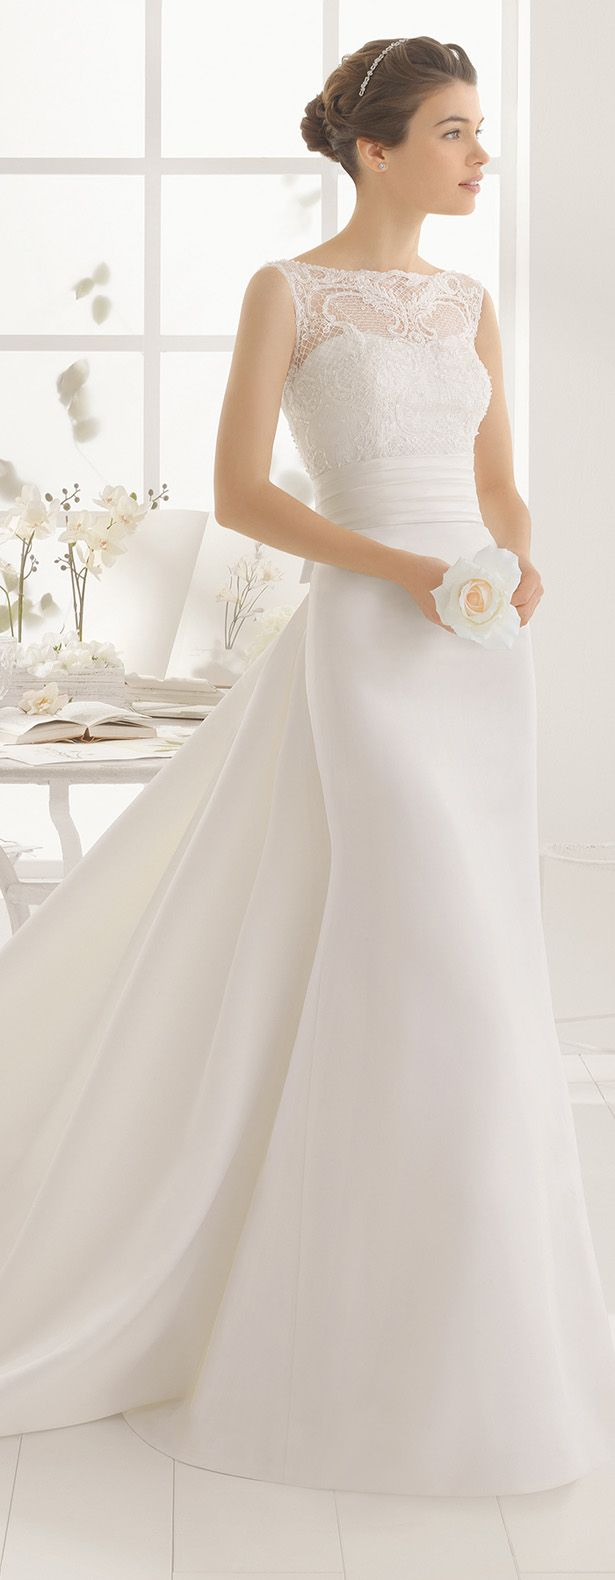 Aire Barcelona 2016 Wedding Dress. 1000+1 Creative Ways to Add Color to Your Wedding! View more wedding ideas: http://www.homeboutiquecraft.com